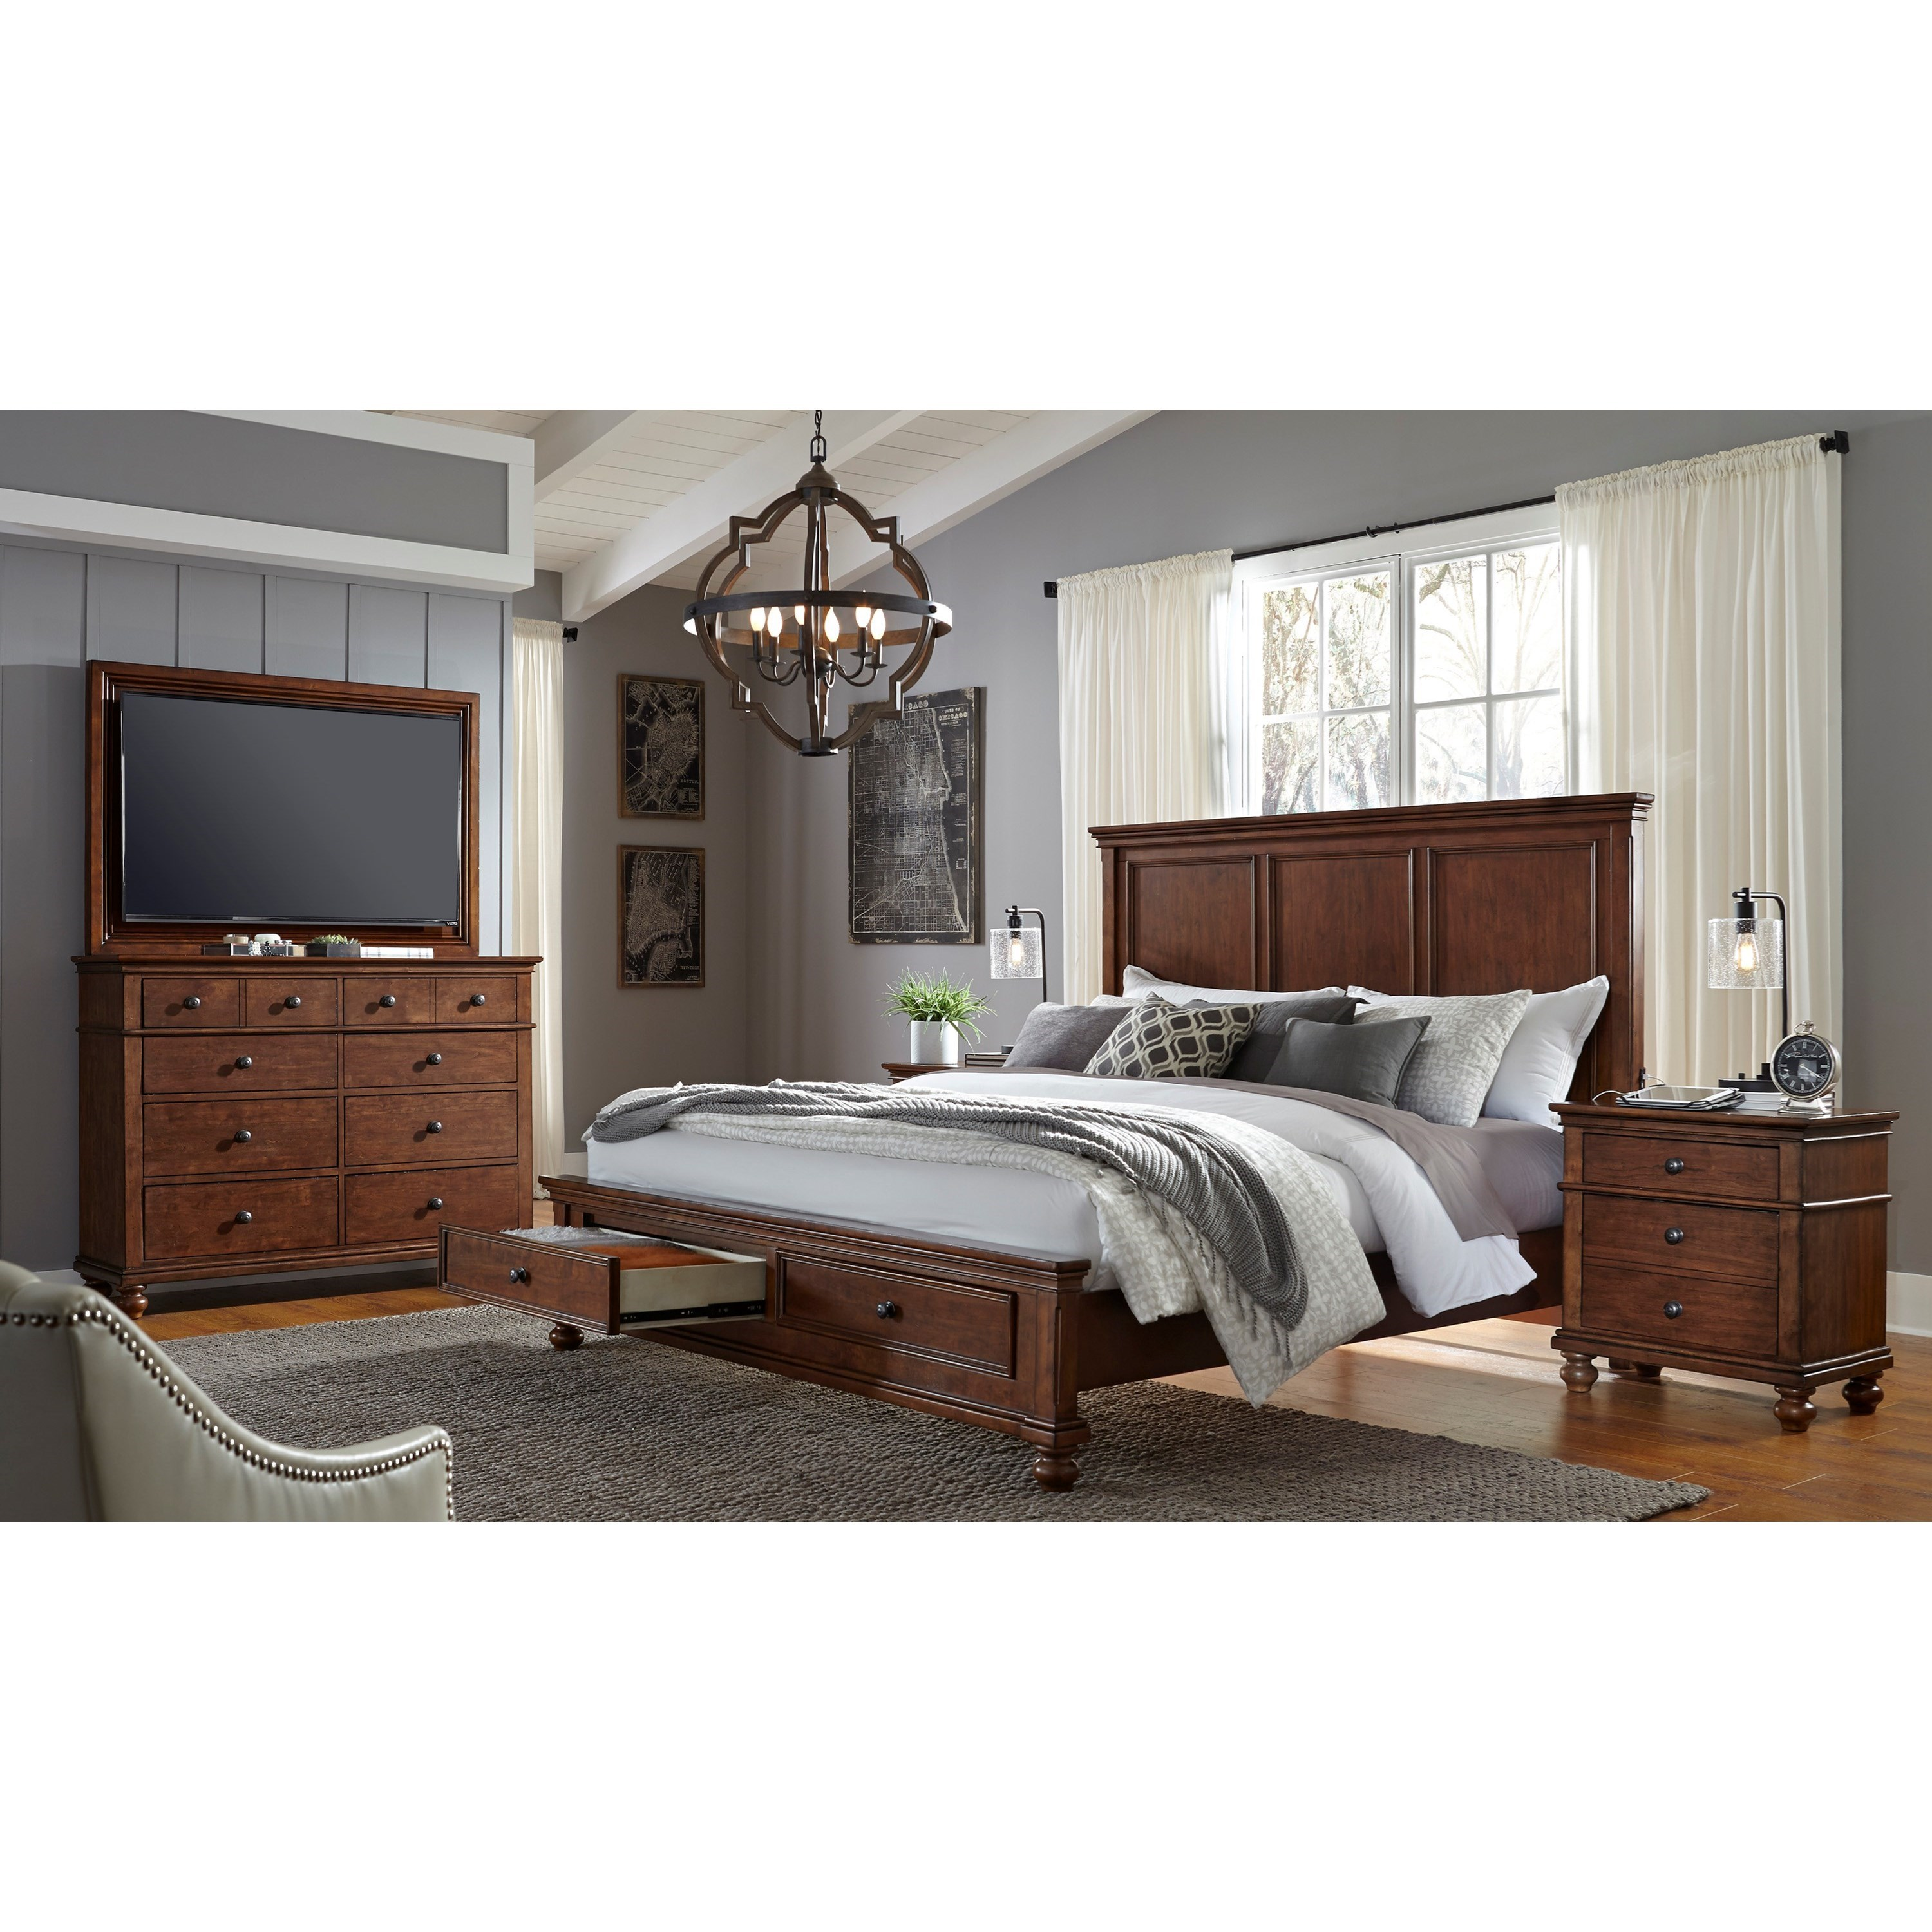 Oxford King Bedroom Group by Aspenhome at Stoney Creek Furniture